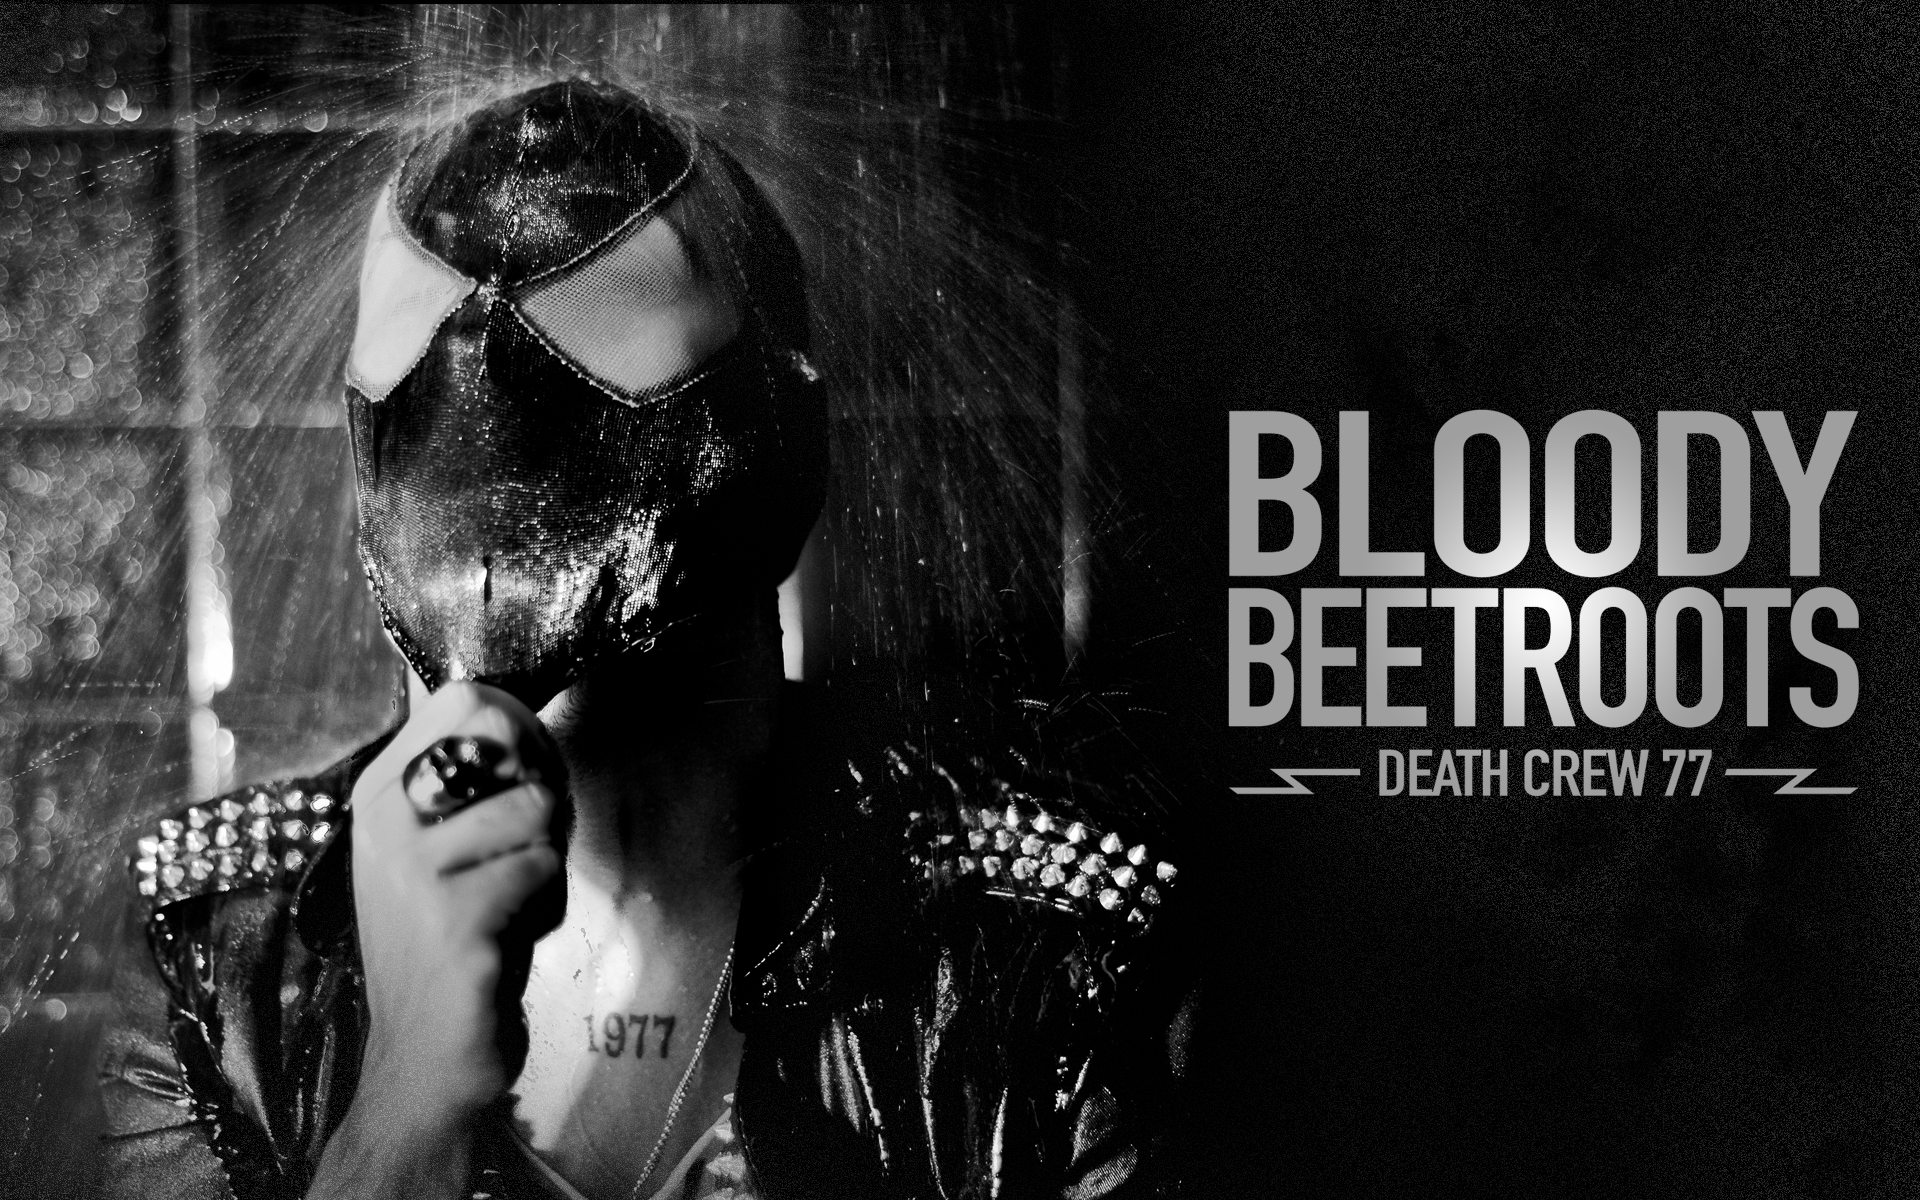 Korean Girl Wallpaper 1920x1080 1 The Bloody Beetroots Hd Wallpapers Background Images